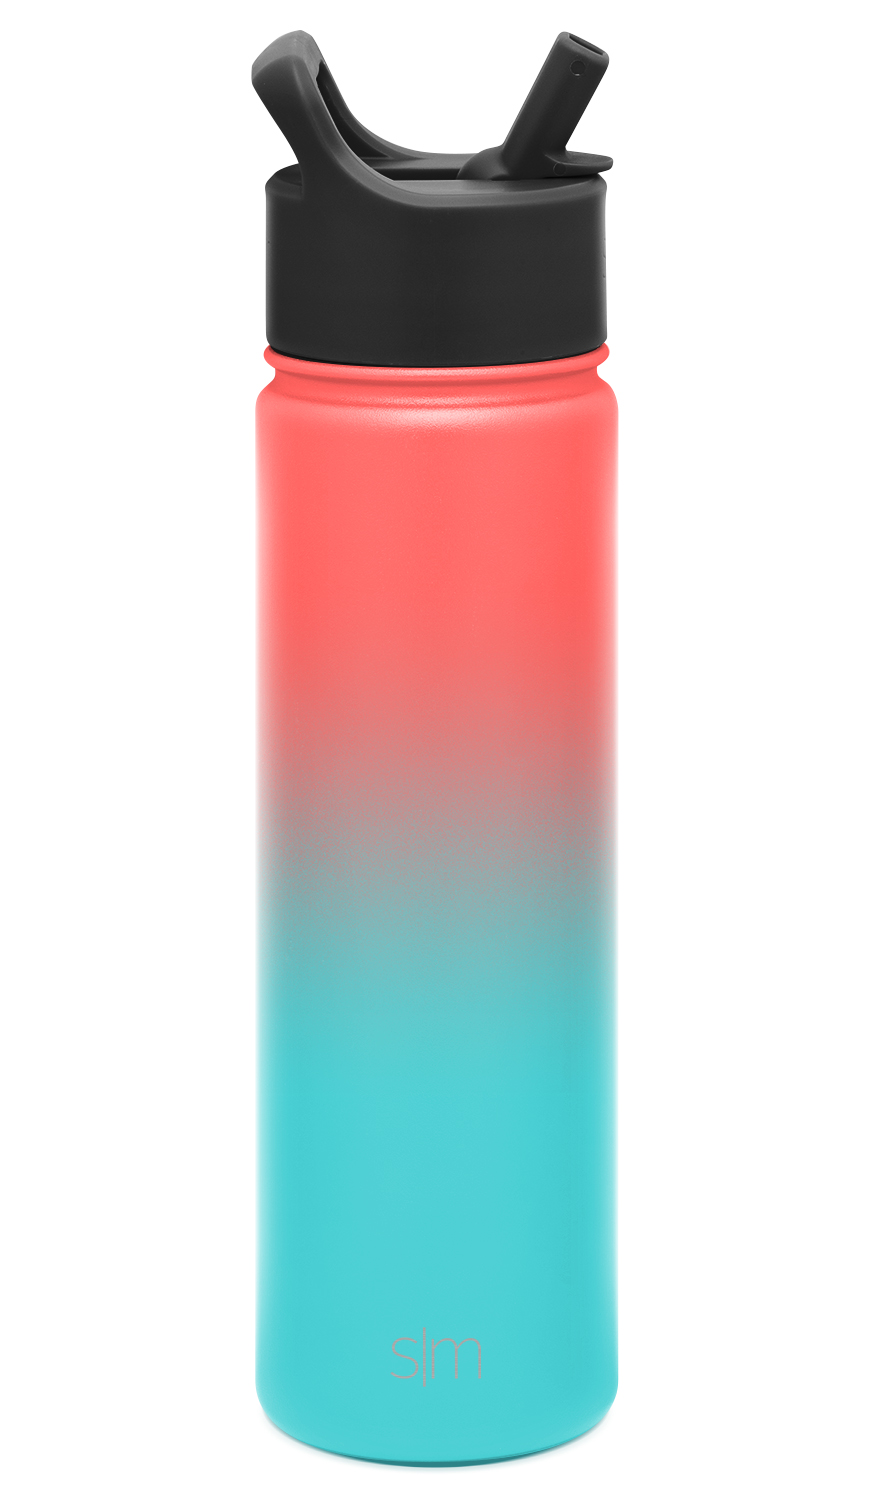 Simple-Modern-Summit-Water-Bottle-with-Straw-Lid-Vacuum-Insulated-Kid-039-s-Cup thumbnail 12